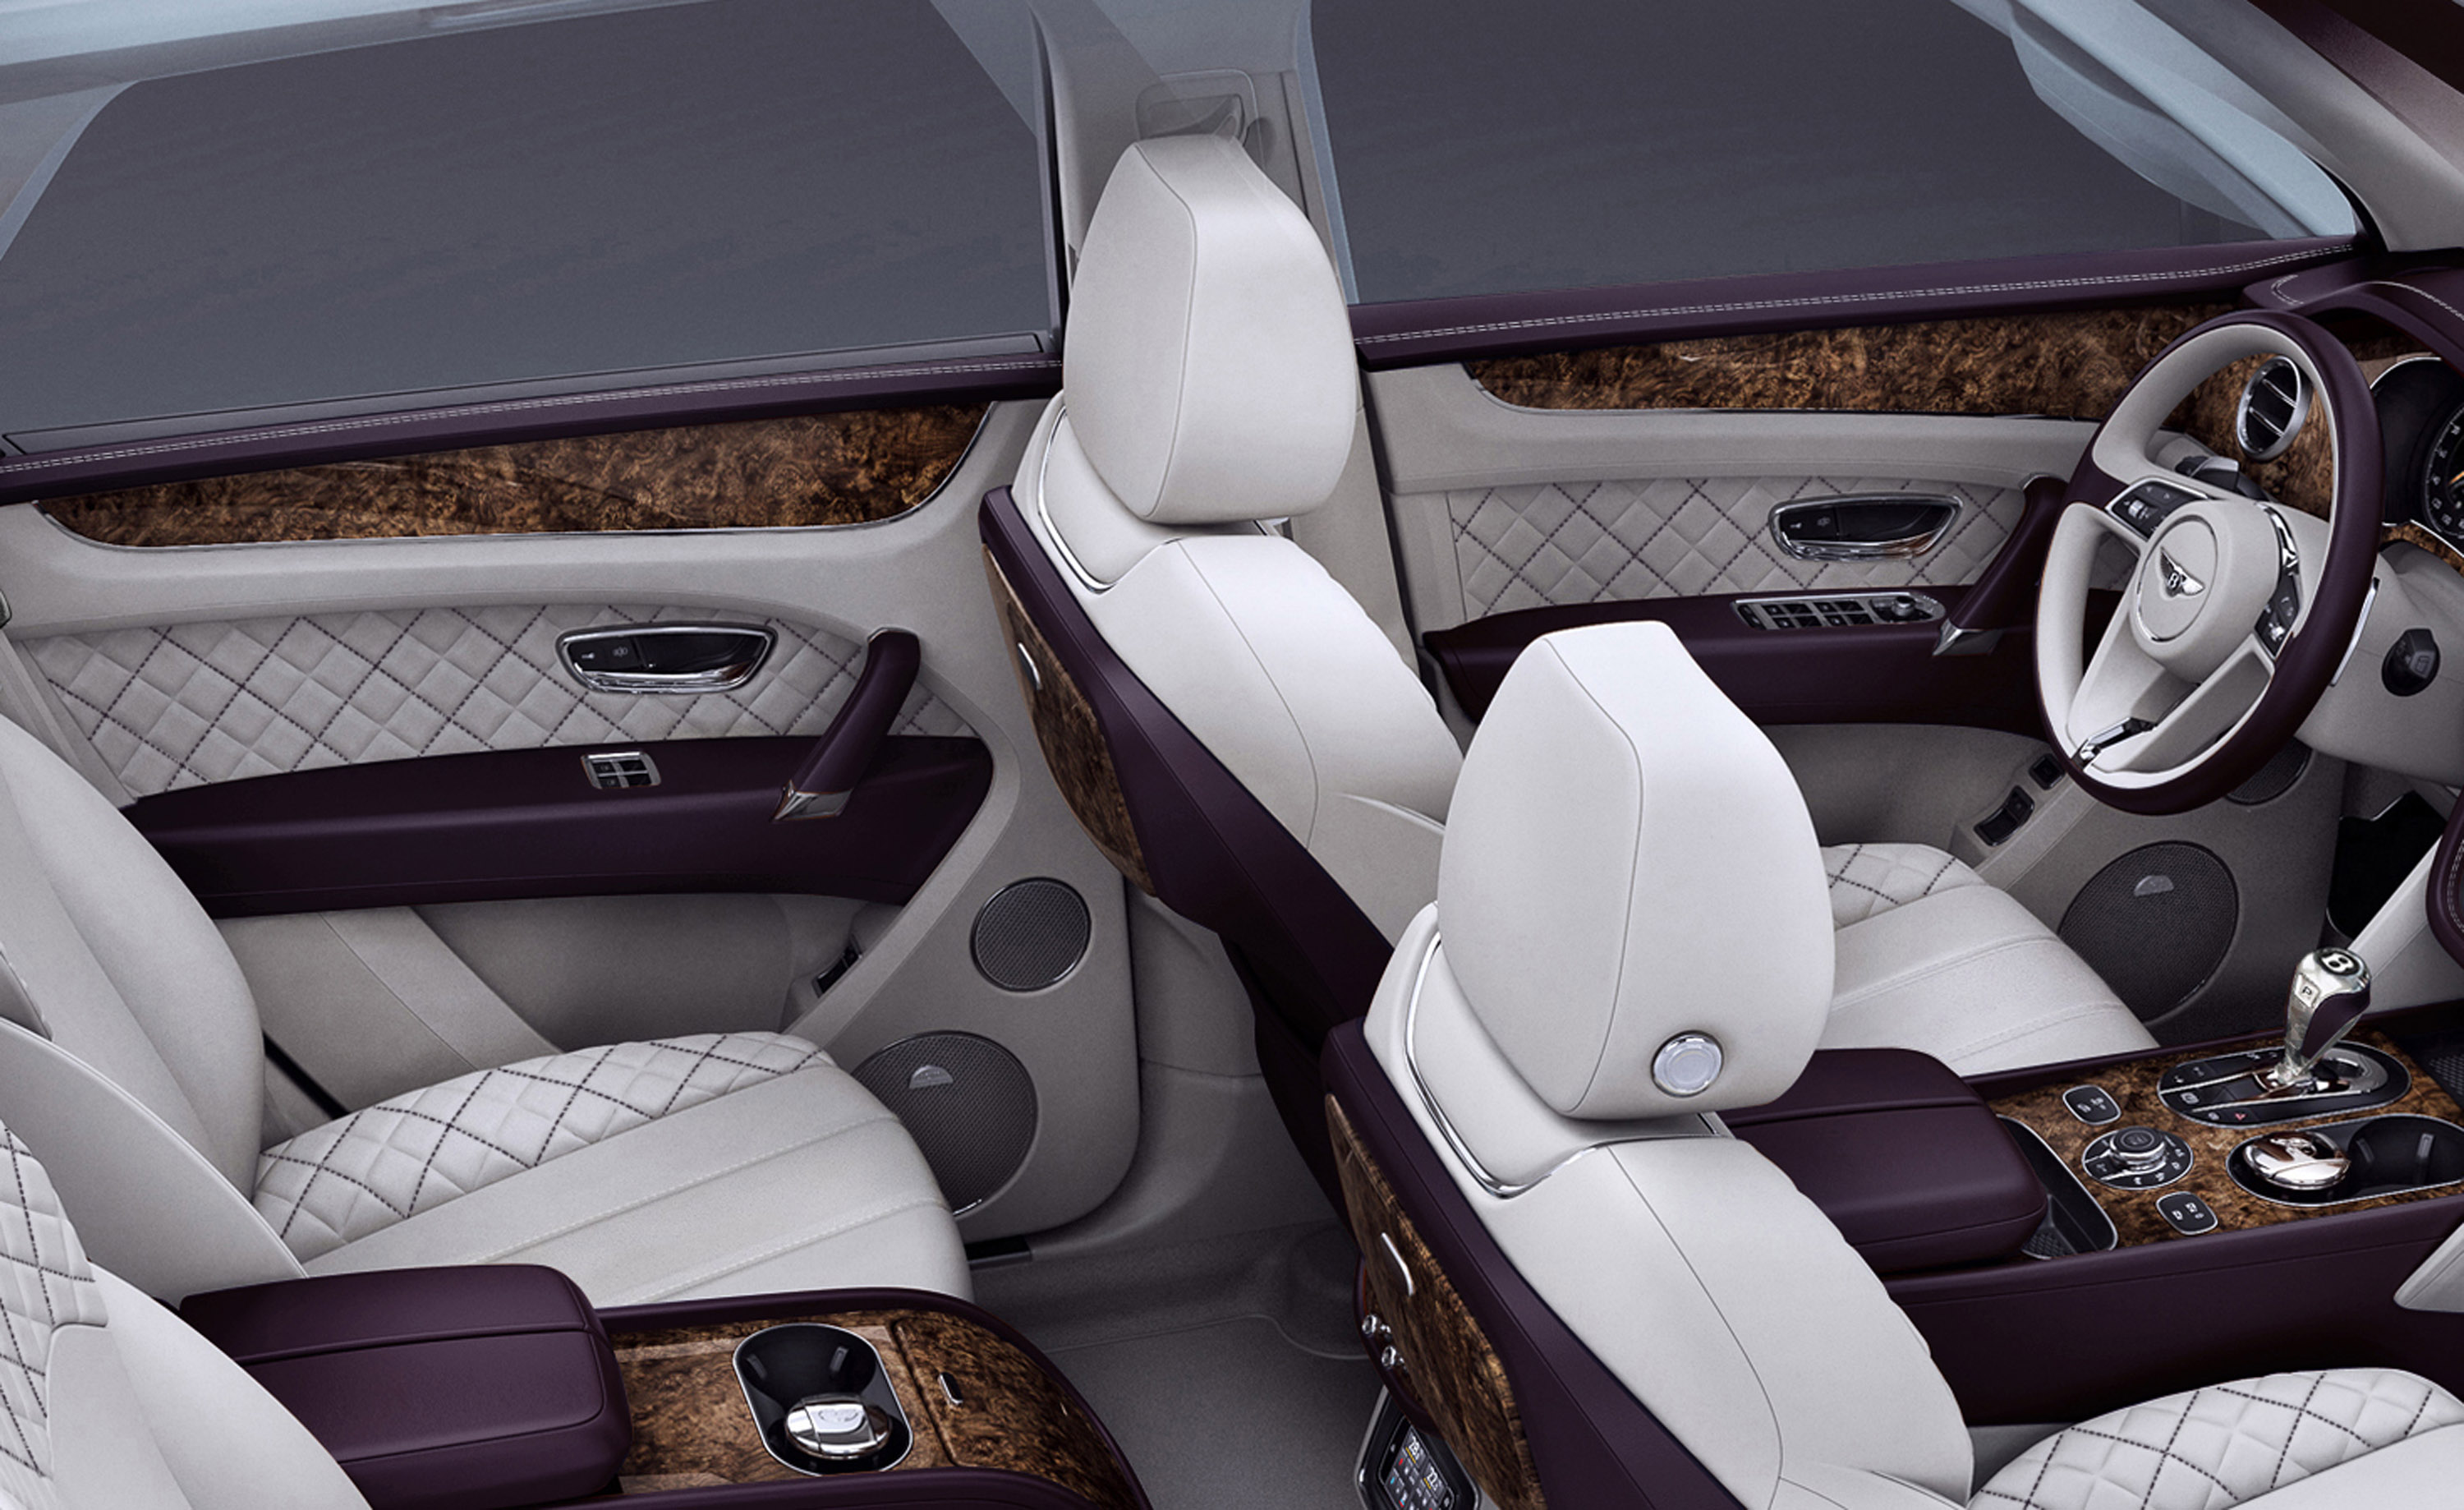 rentals rent sports san to click much here luxury of convertible does cost car a how exotic luxi rental and bentley diego best